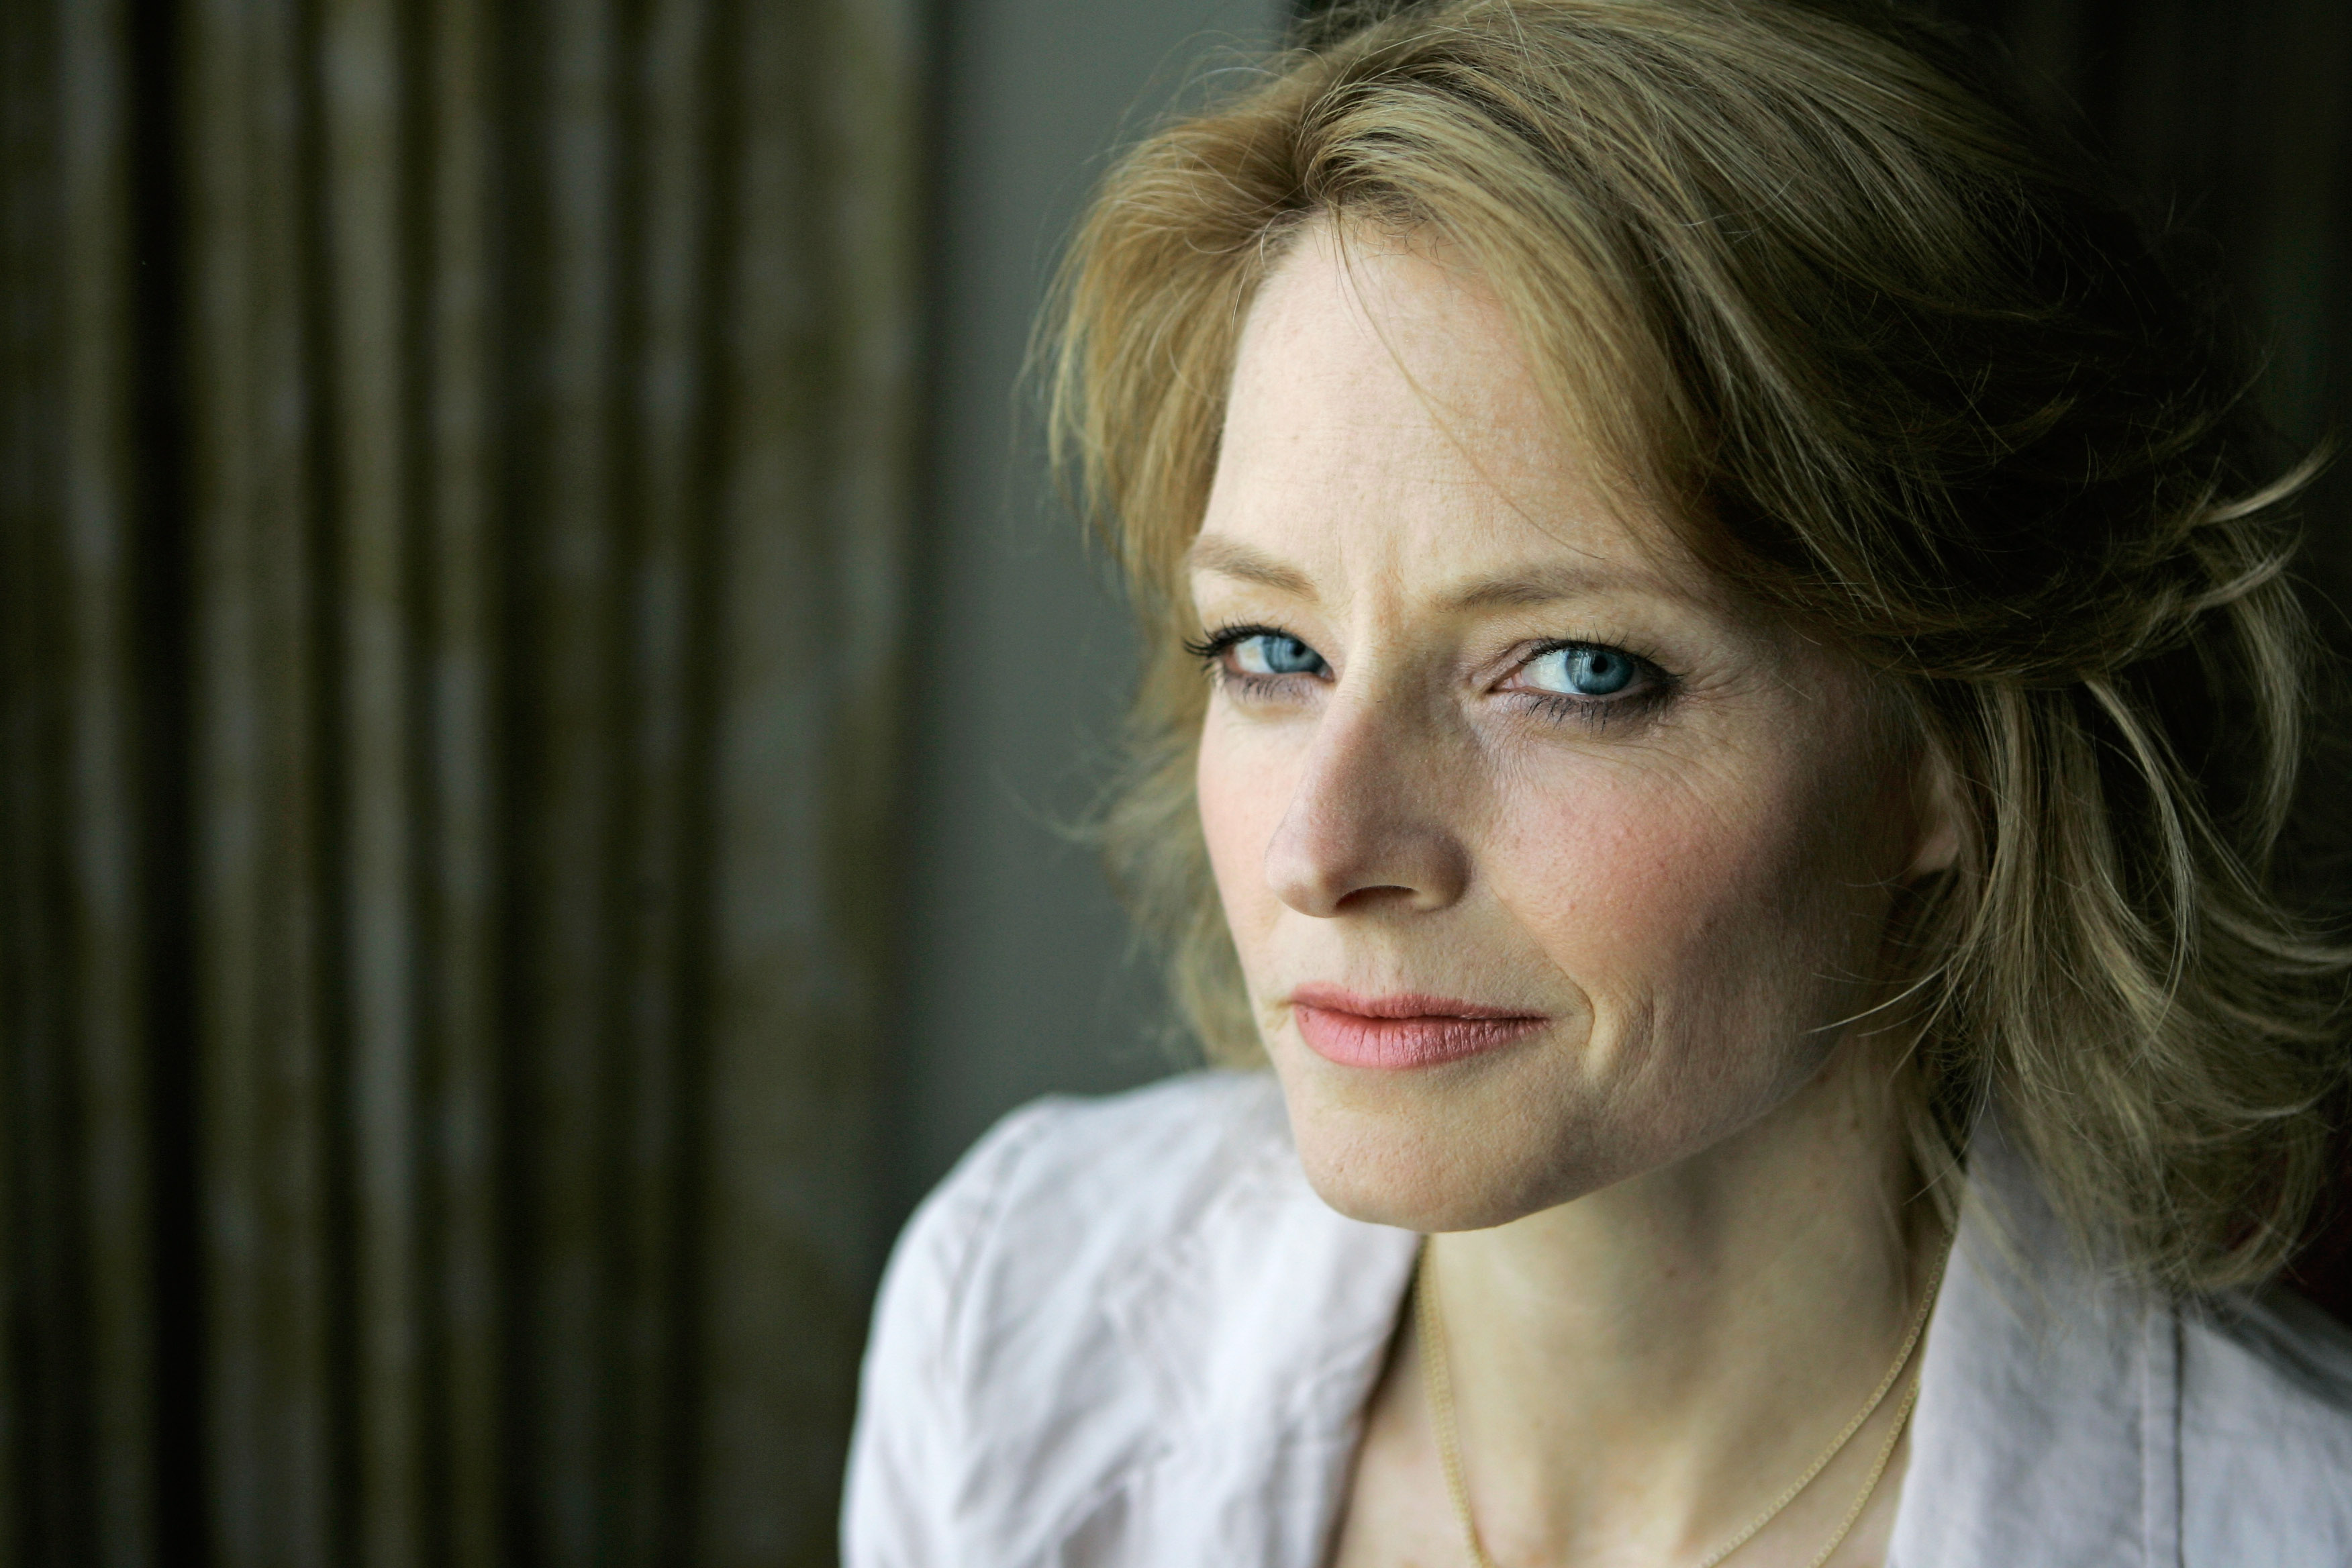 Jodie Foster Wallpapers High Quality Download Free